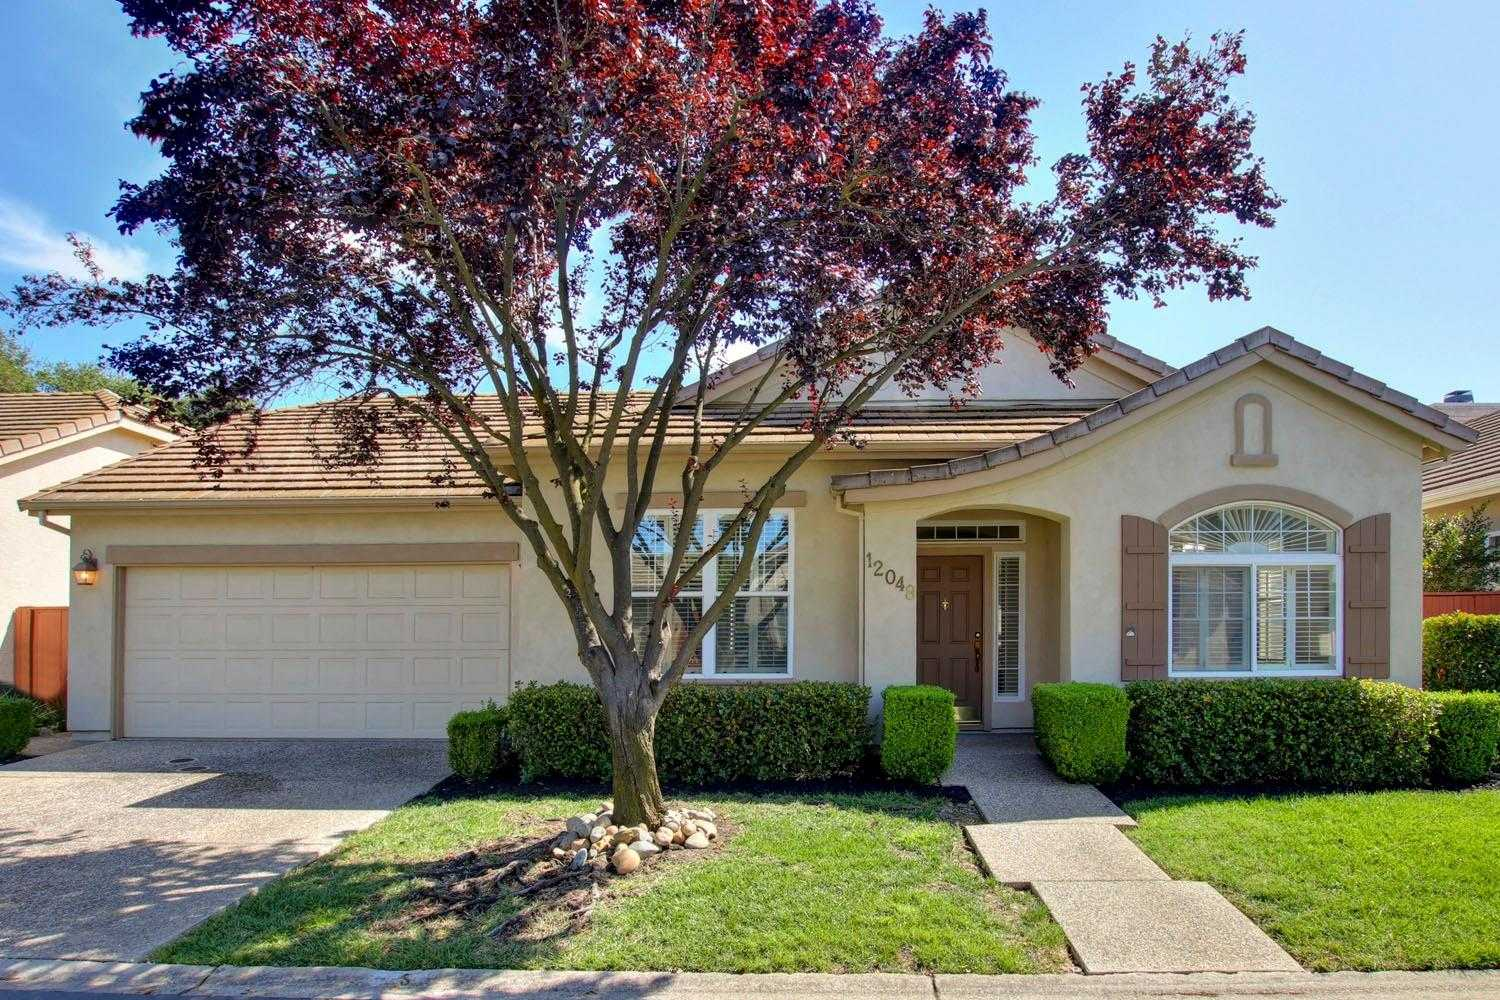 $430,000 - 2Br/2Ba -  for Sale in Gold River